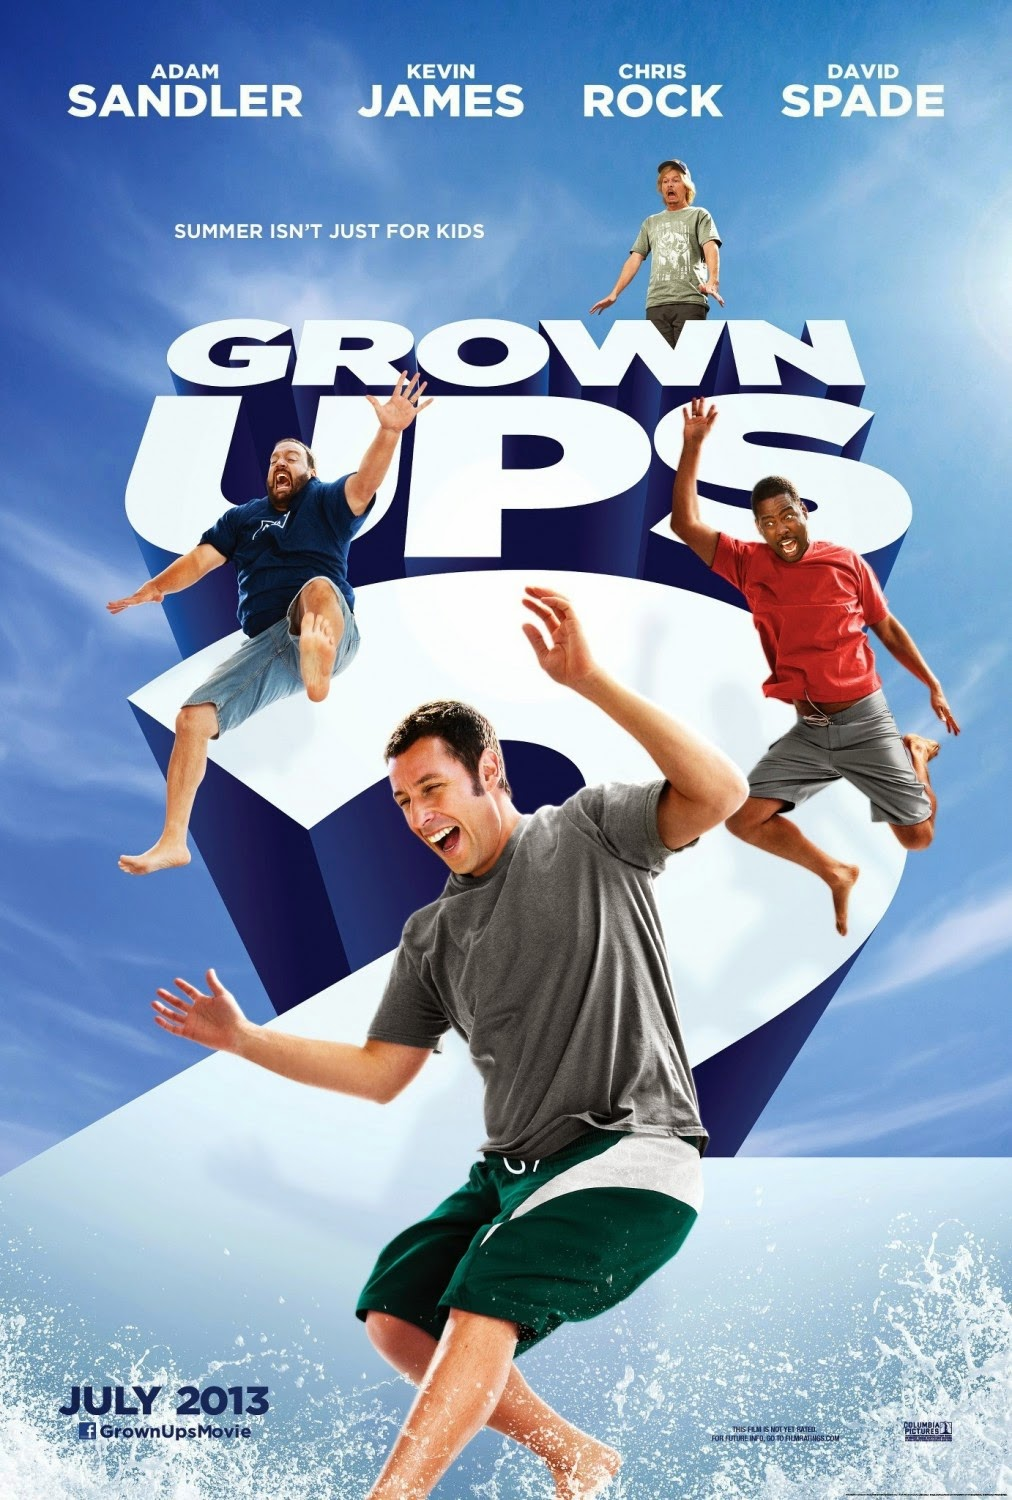 Grown Ups 2 by Dennis Duggan